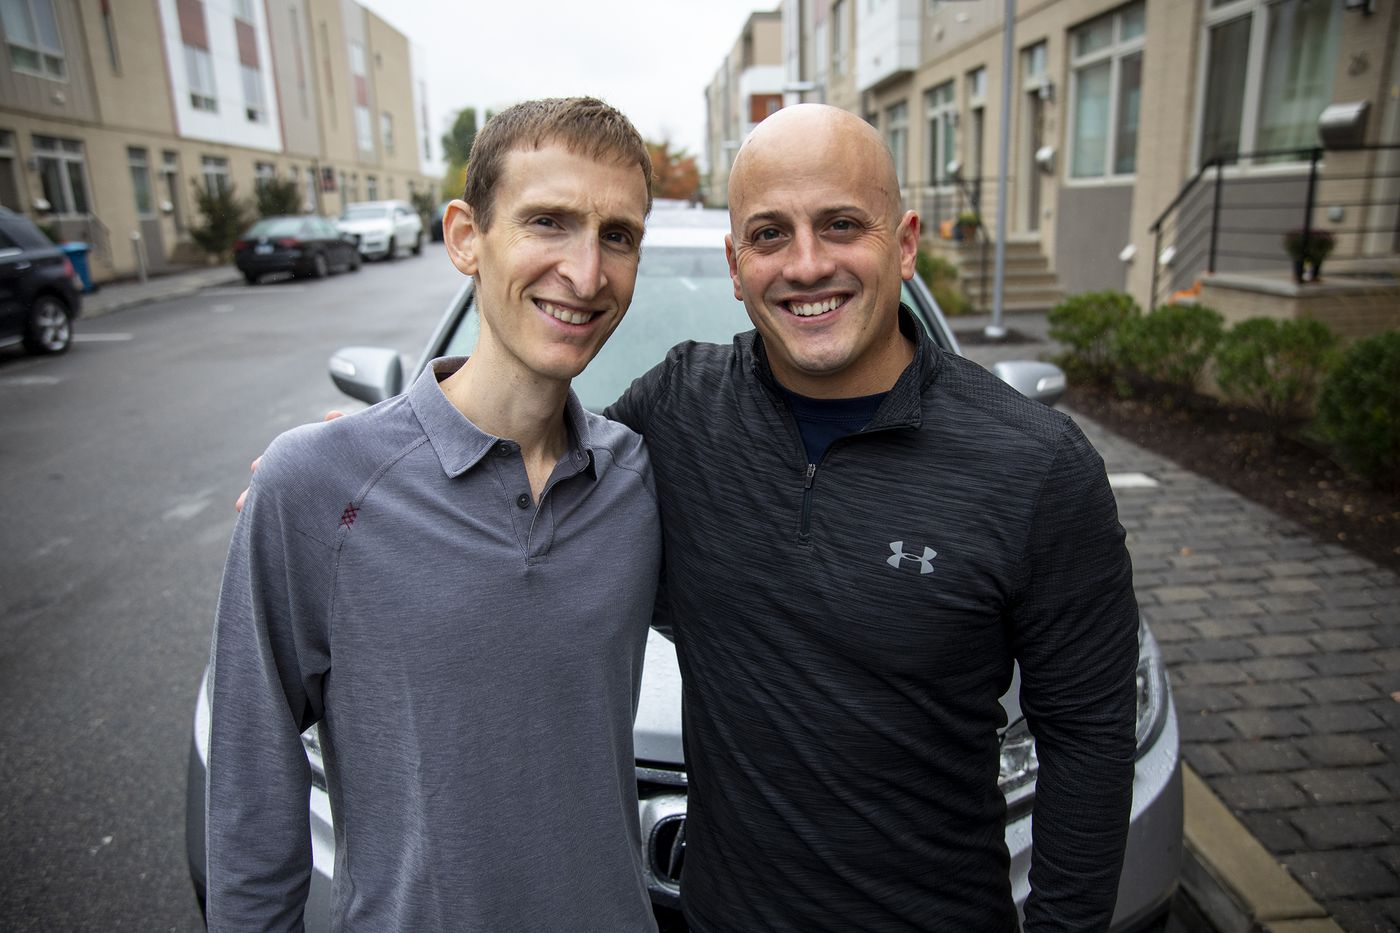 Haverford Middle School Teacher Teams Up With Shark Tank Winner to Create Distracted Driving App